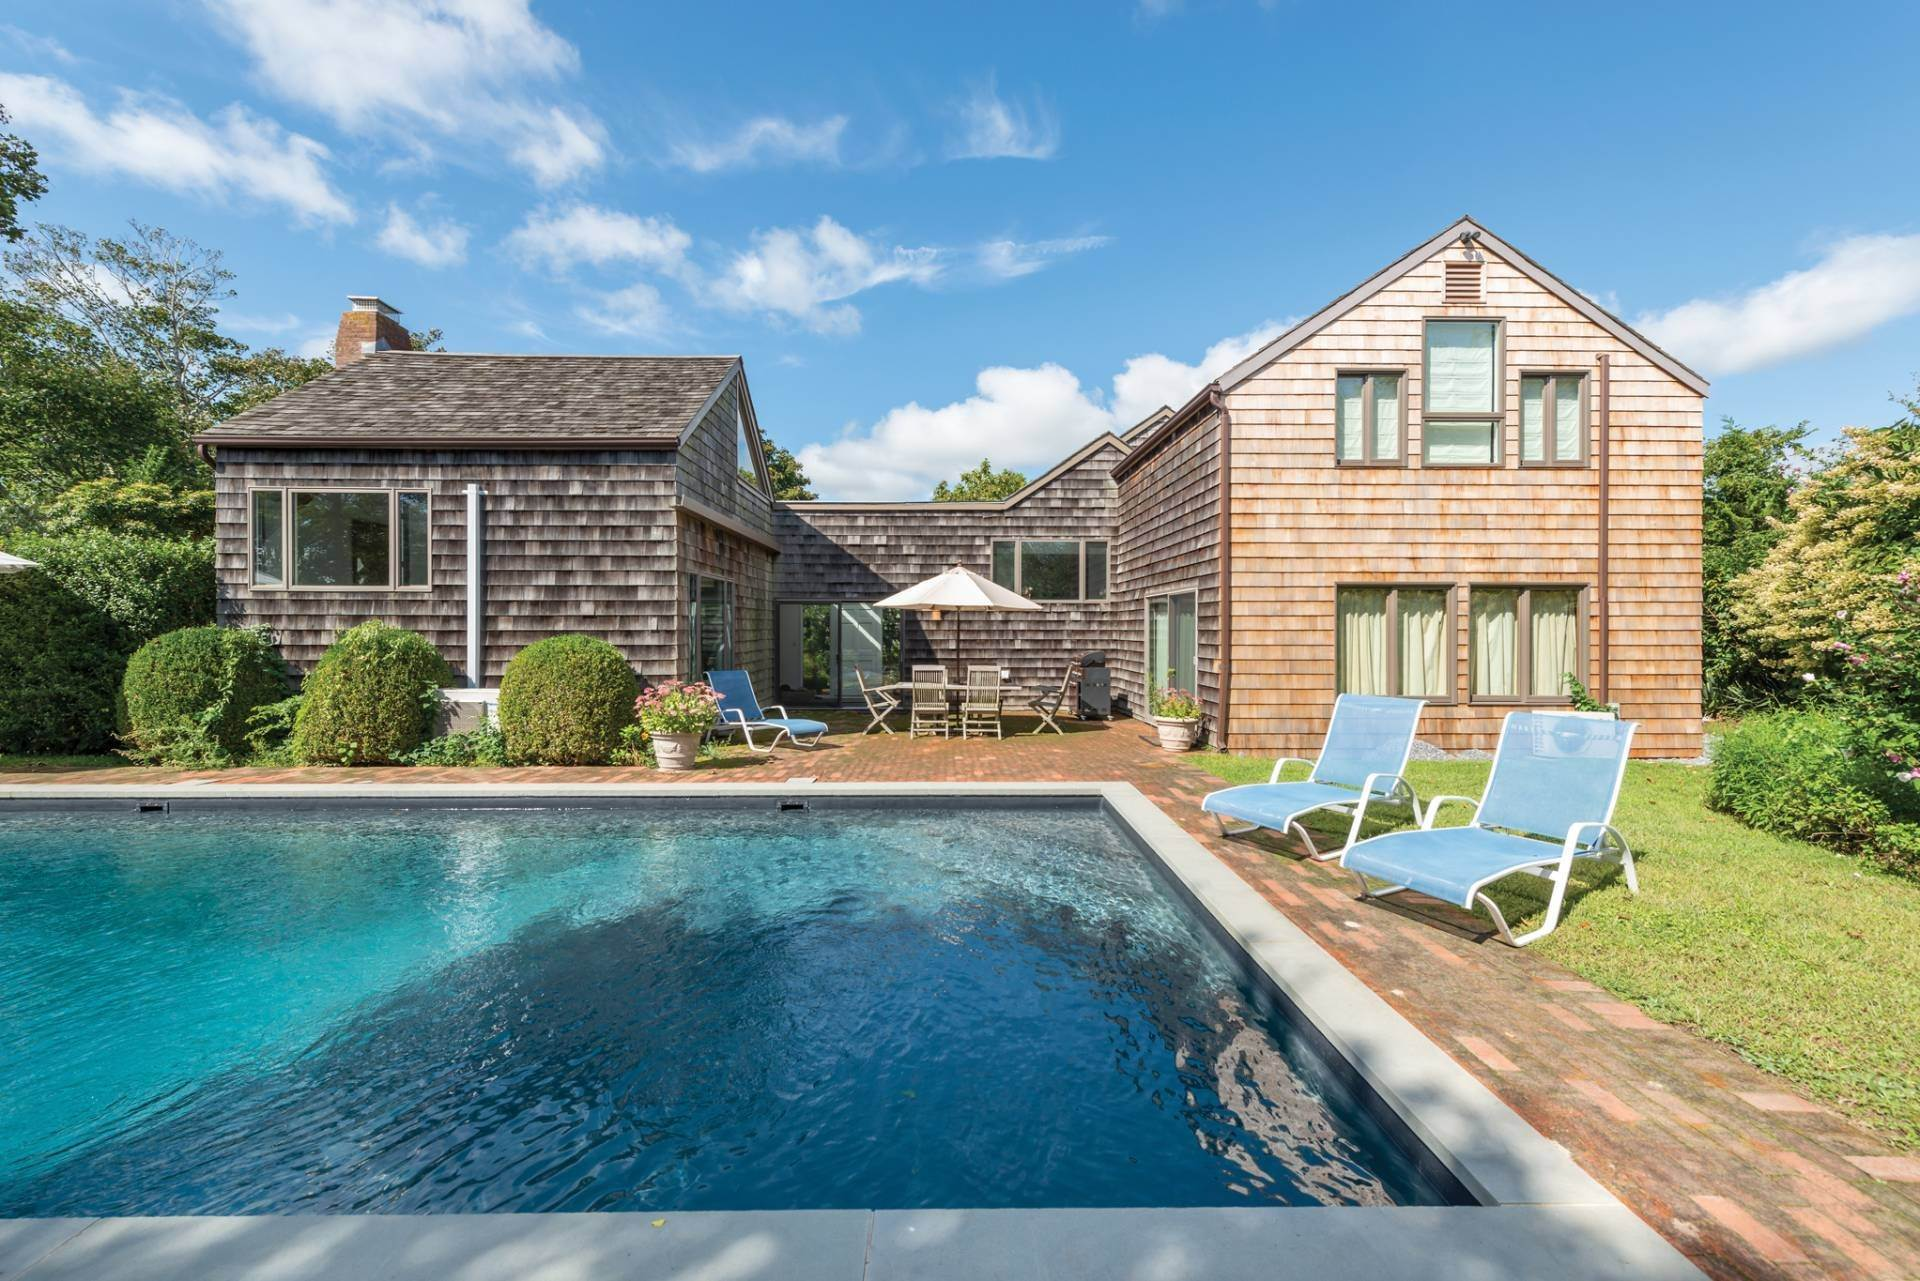 Single Family Homes at Sagaponack South Sagaponack Village, Southampton Town, NY 11962